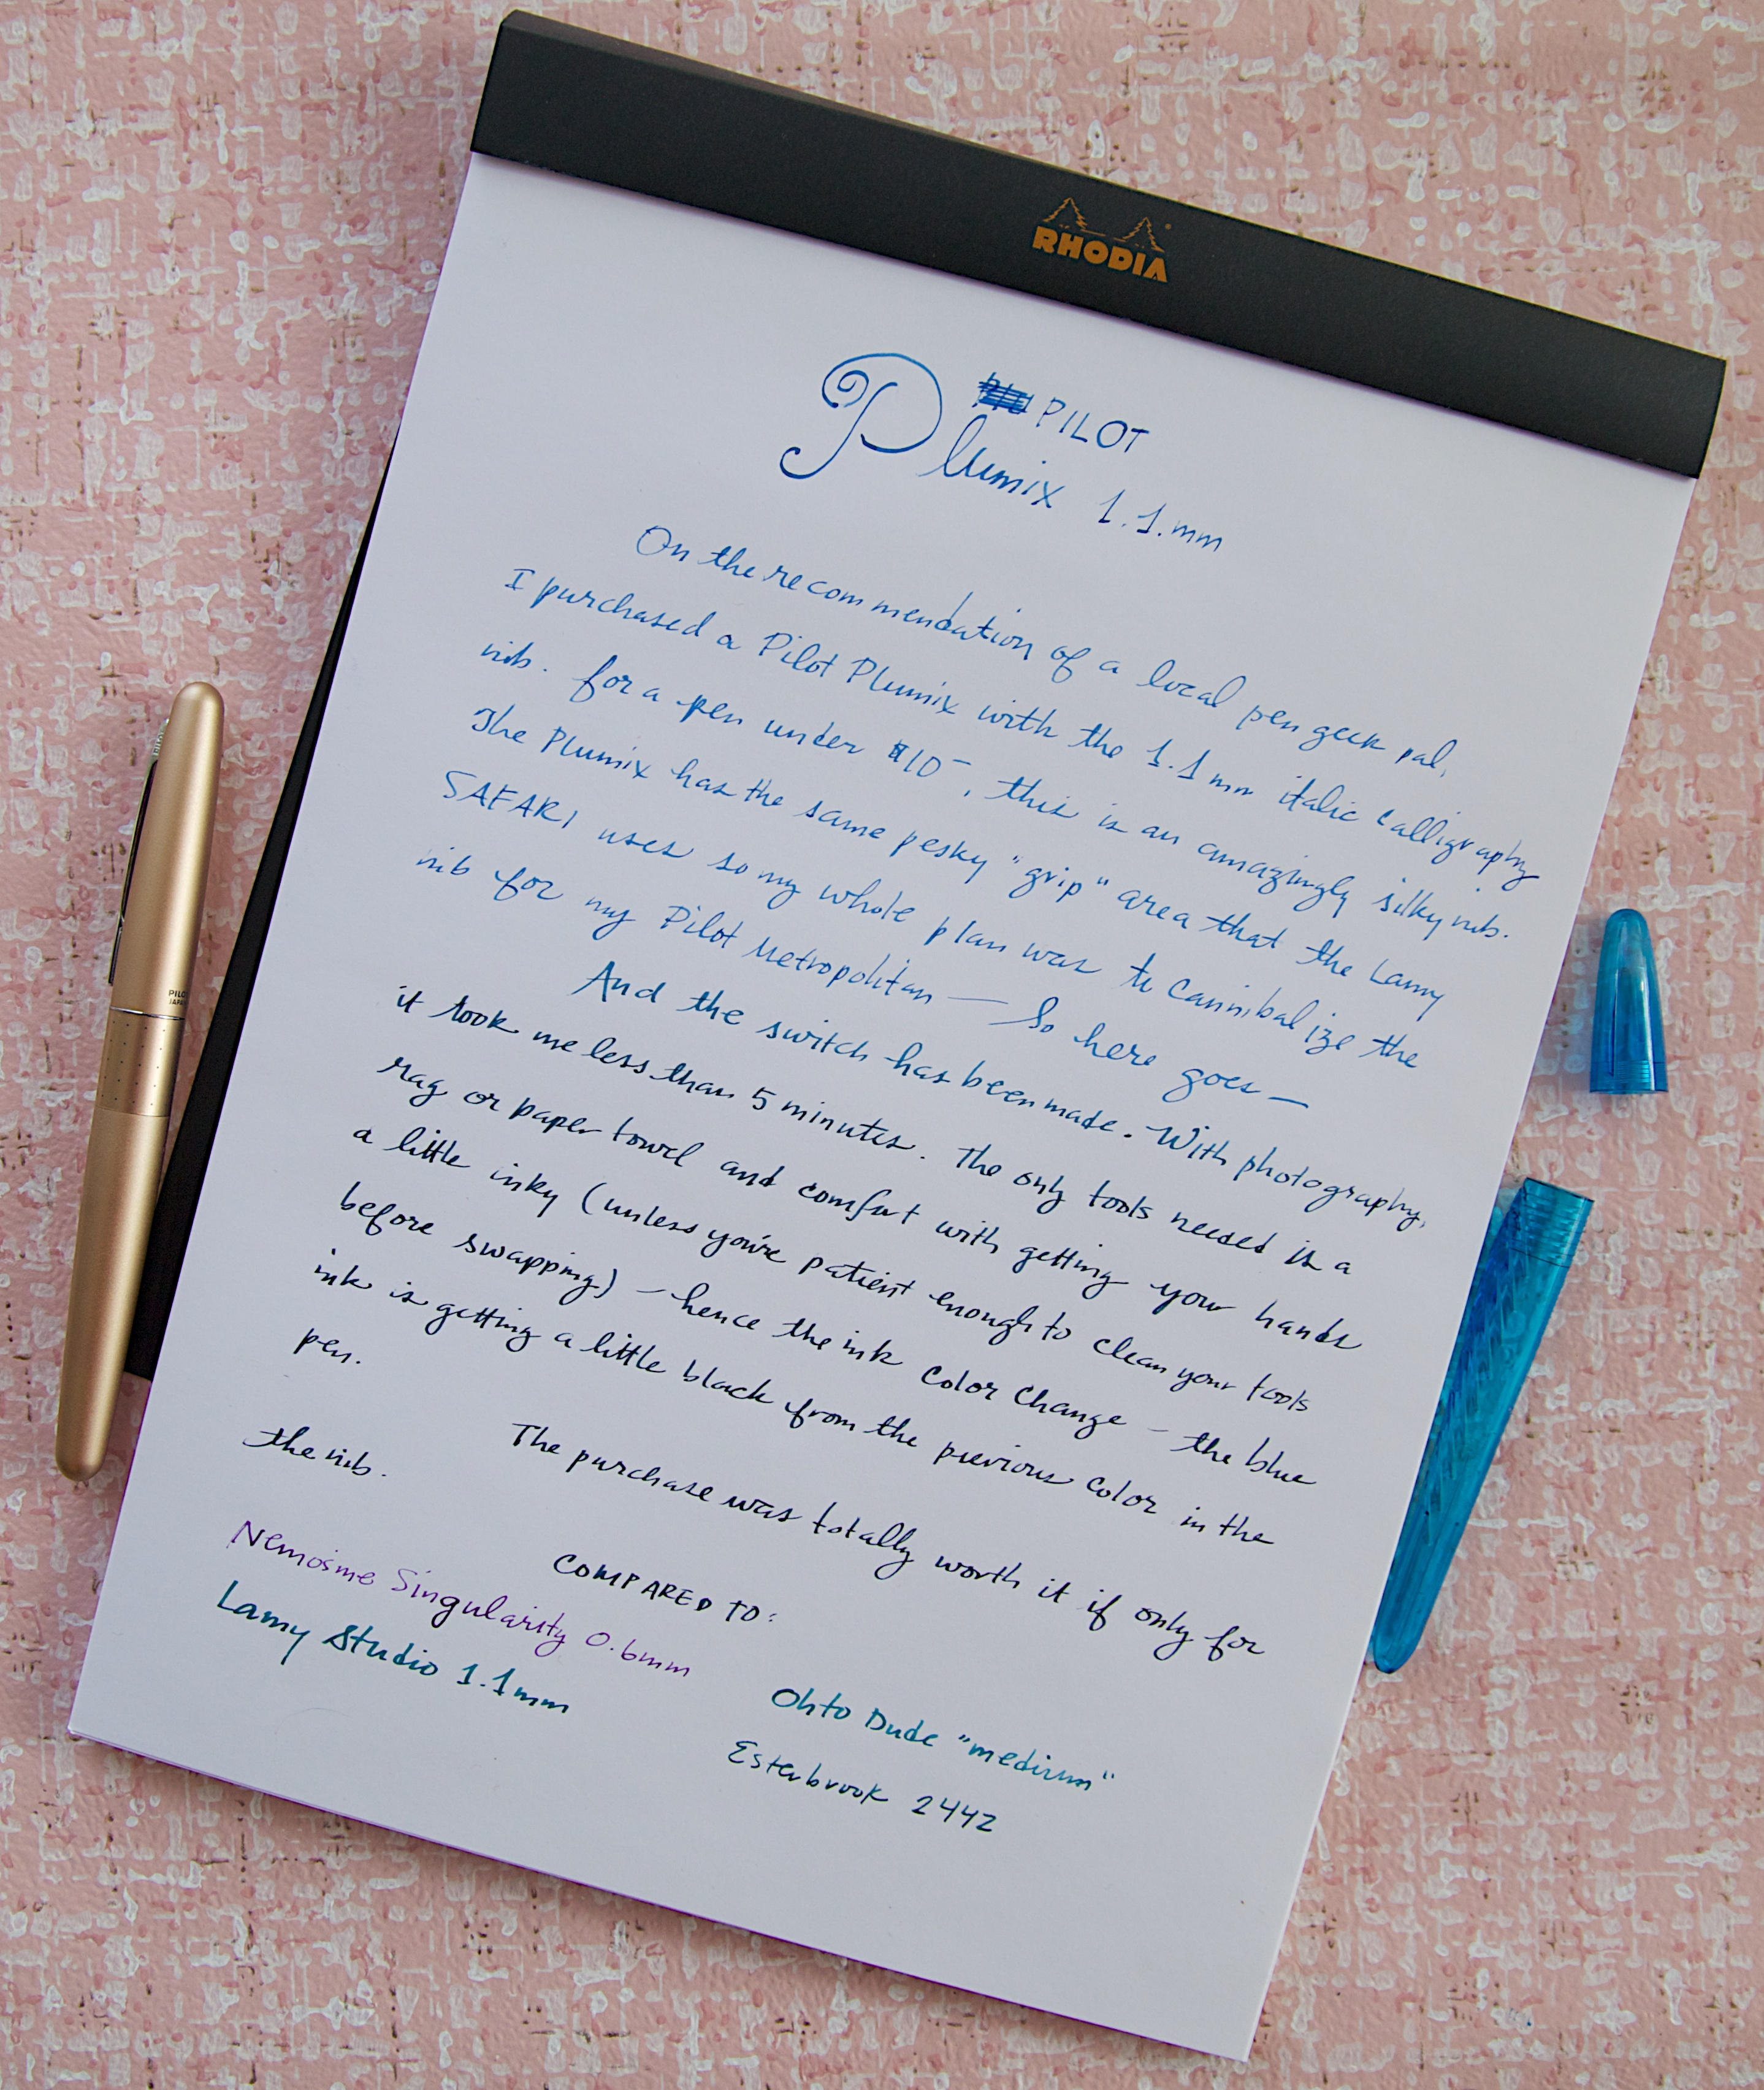 Pilot Plumix 1.1mm writing sample